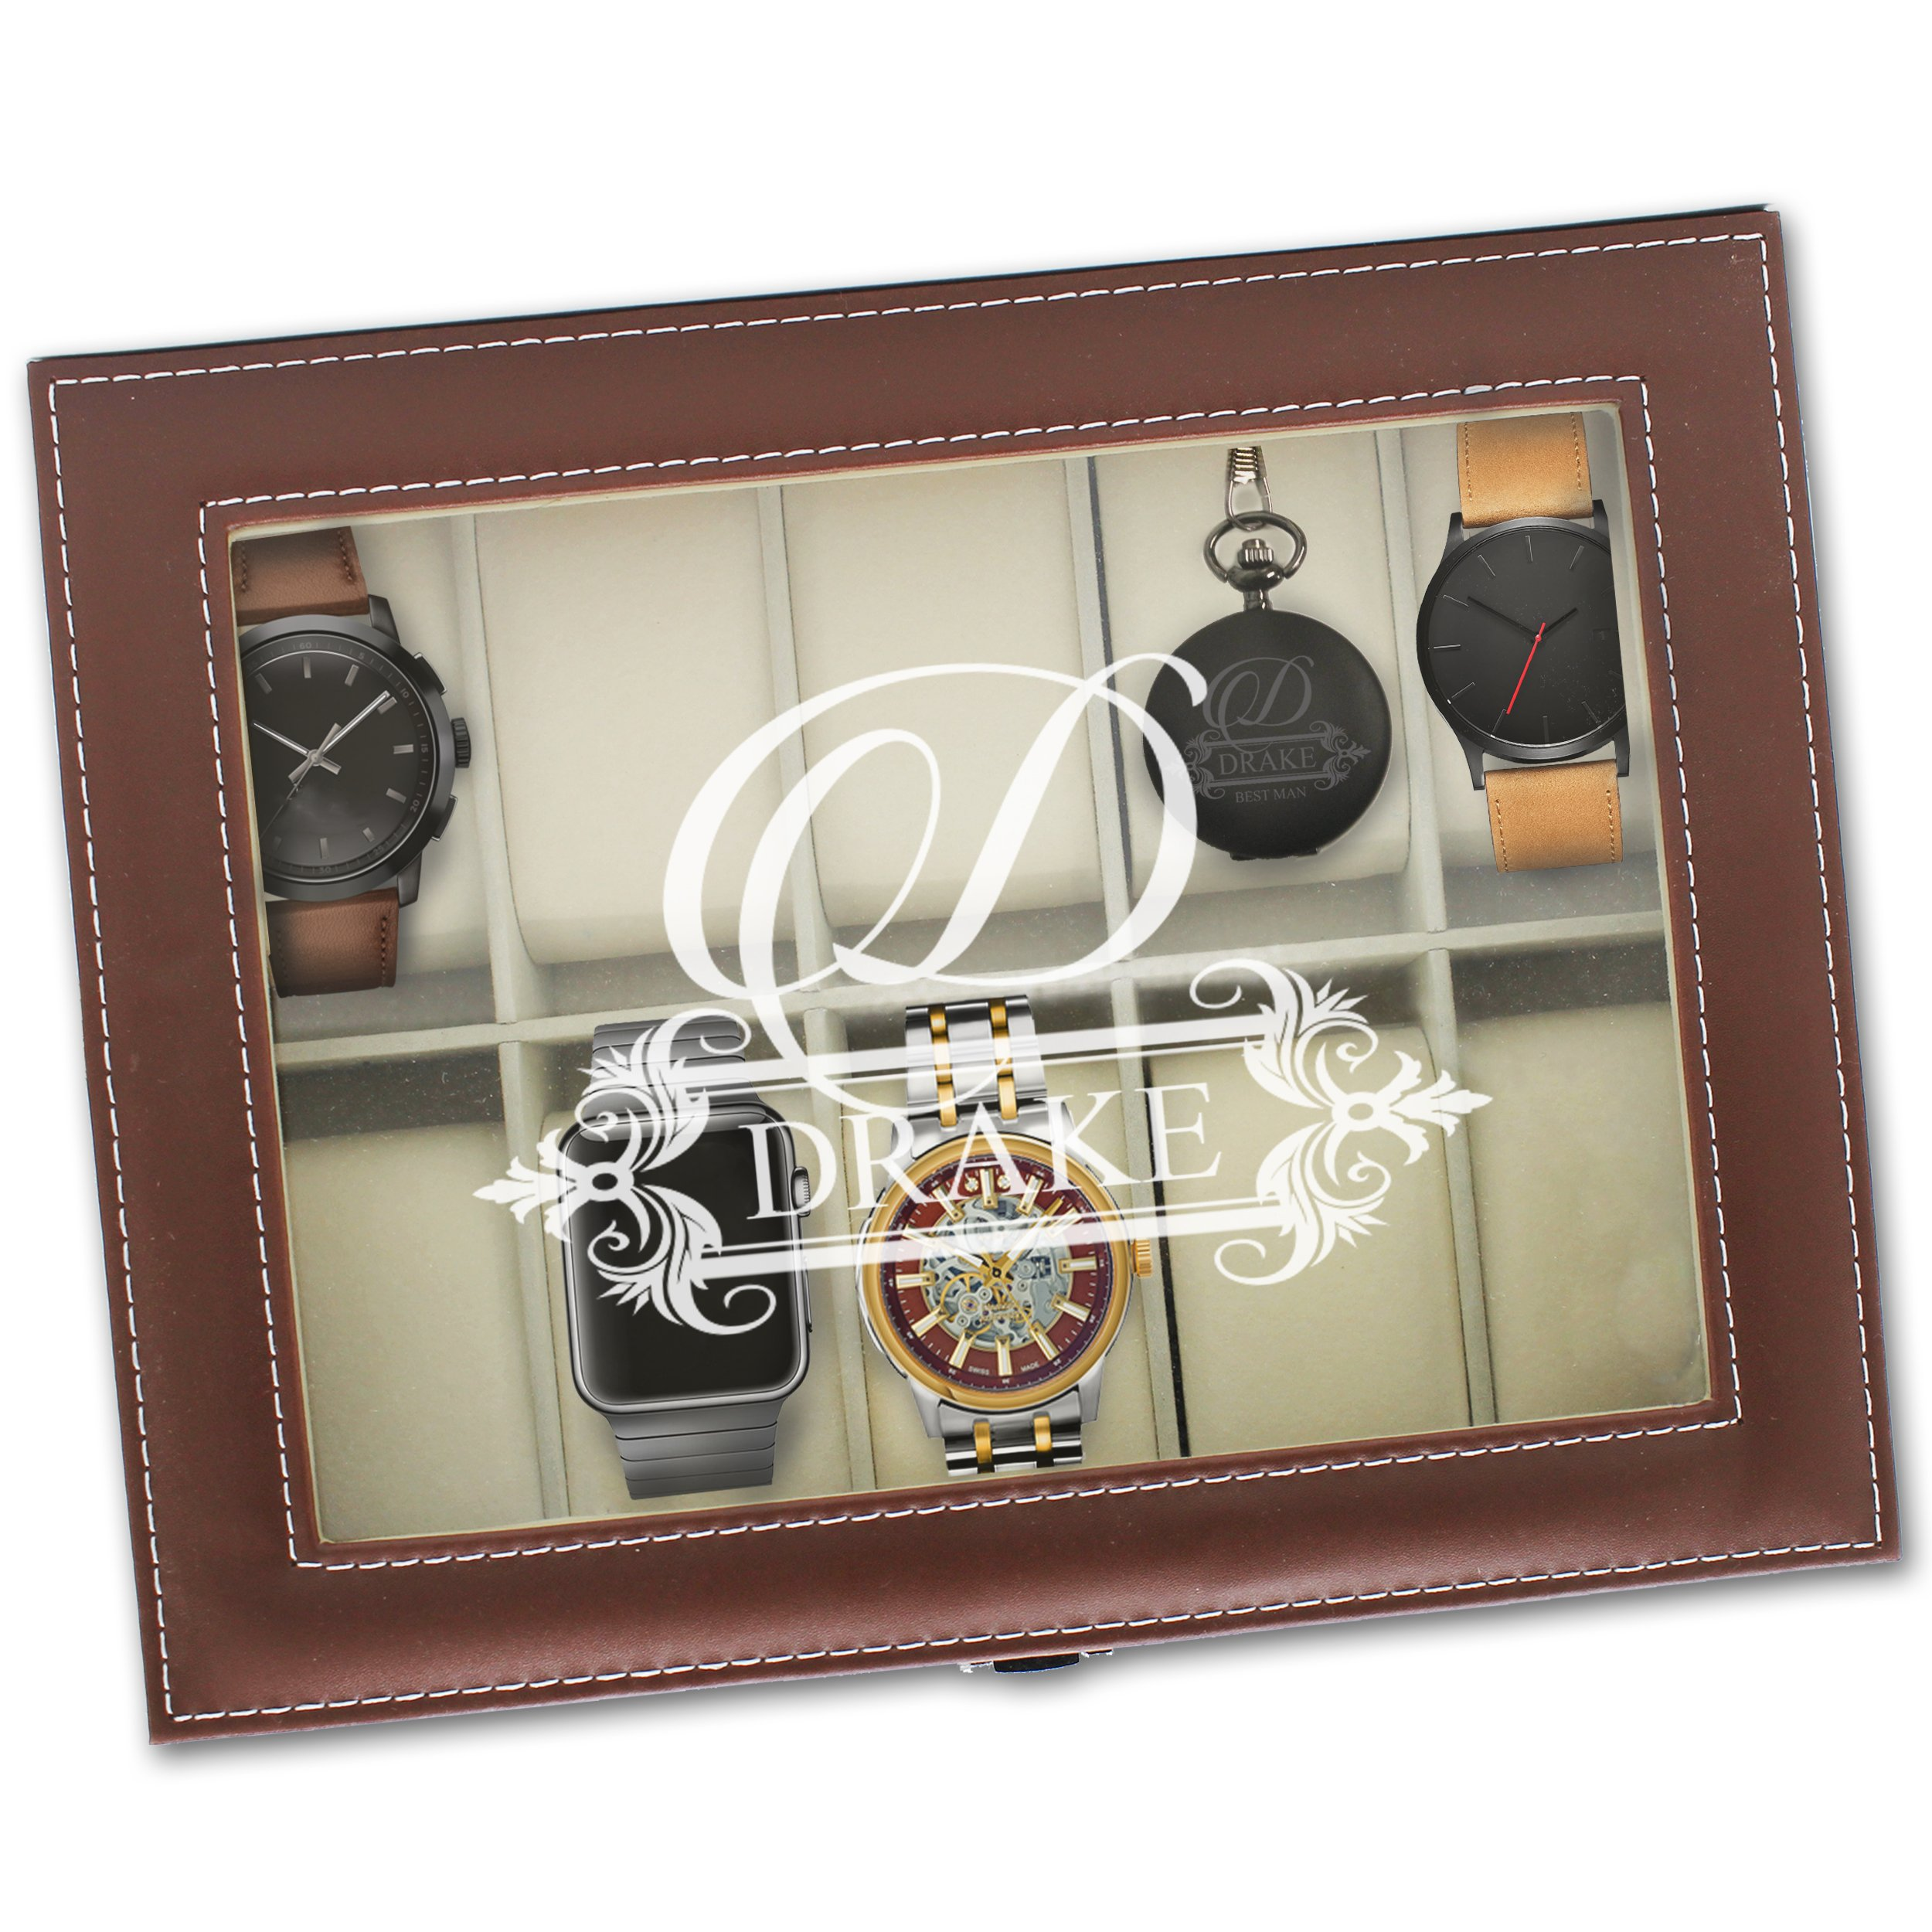 Custom Personalized Watch Storage Box Glass Display Case Gift for Men, Him, Husband - Engraved and Monogrammed for Free (Brown)